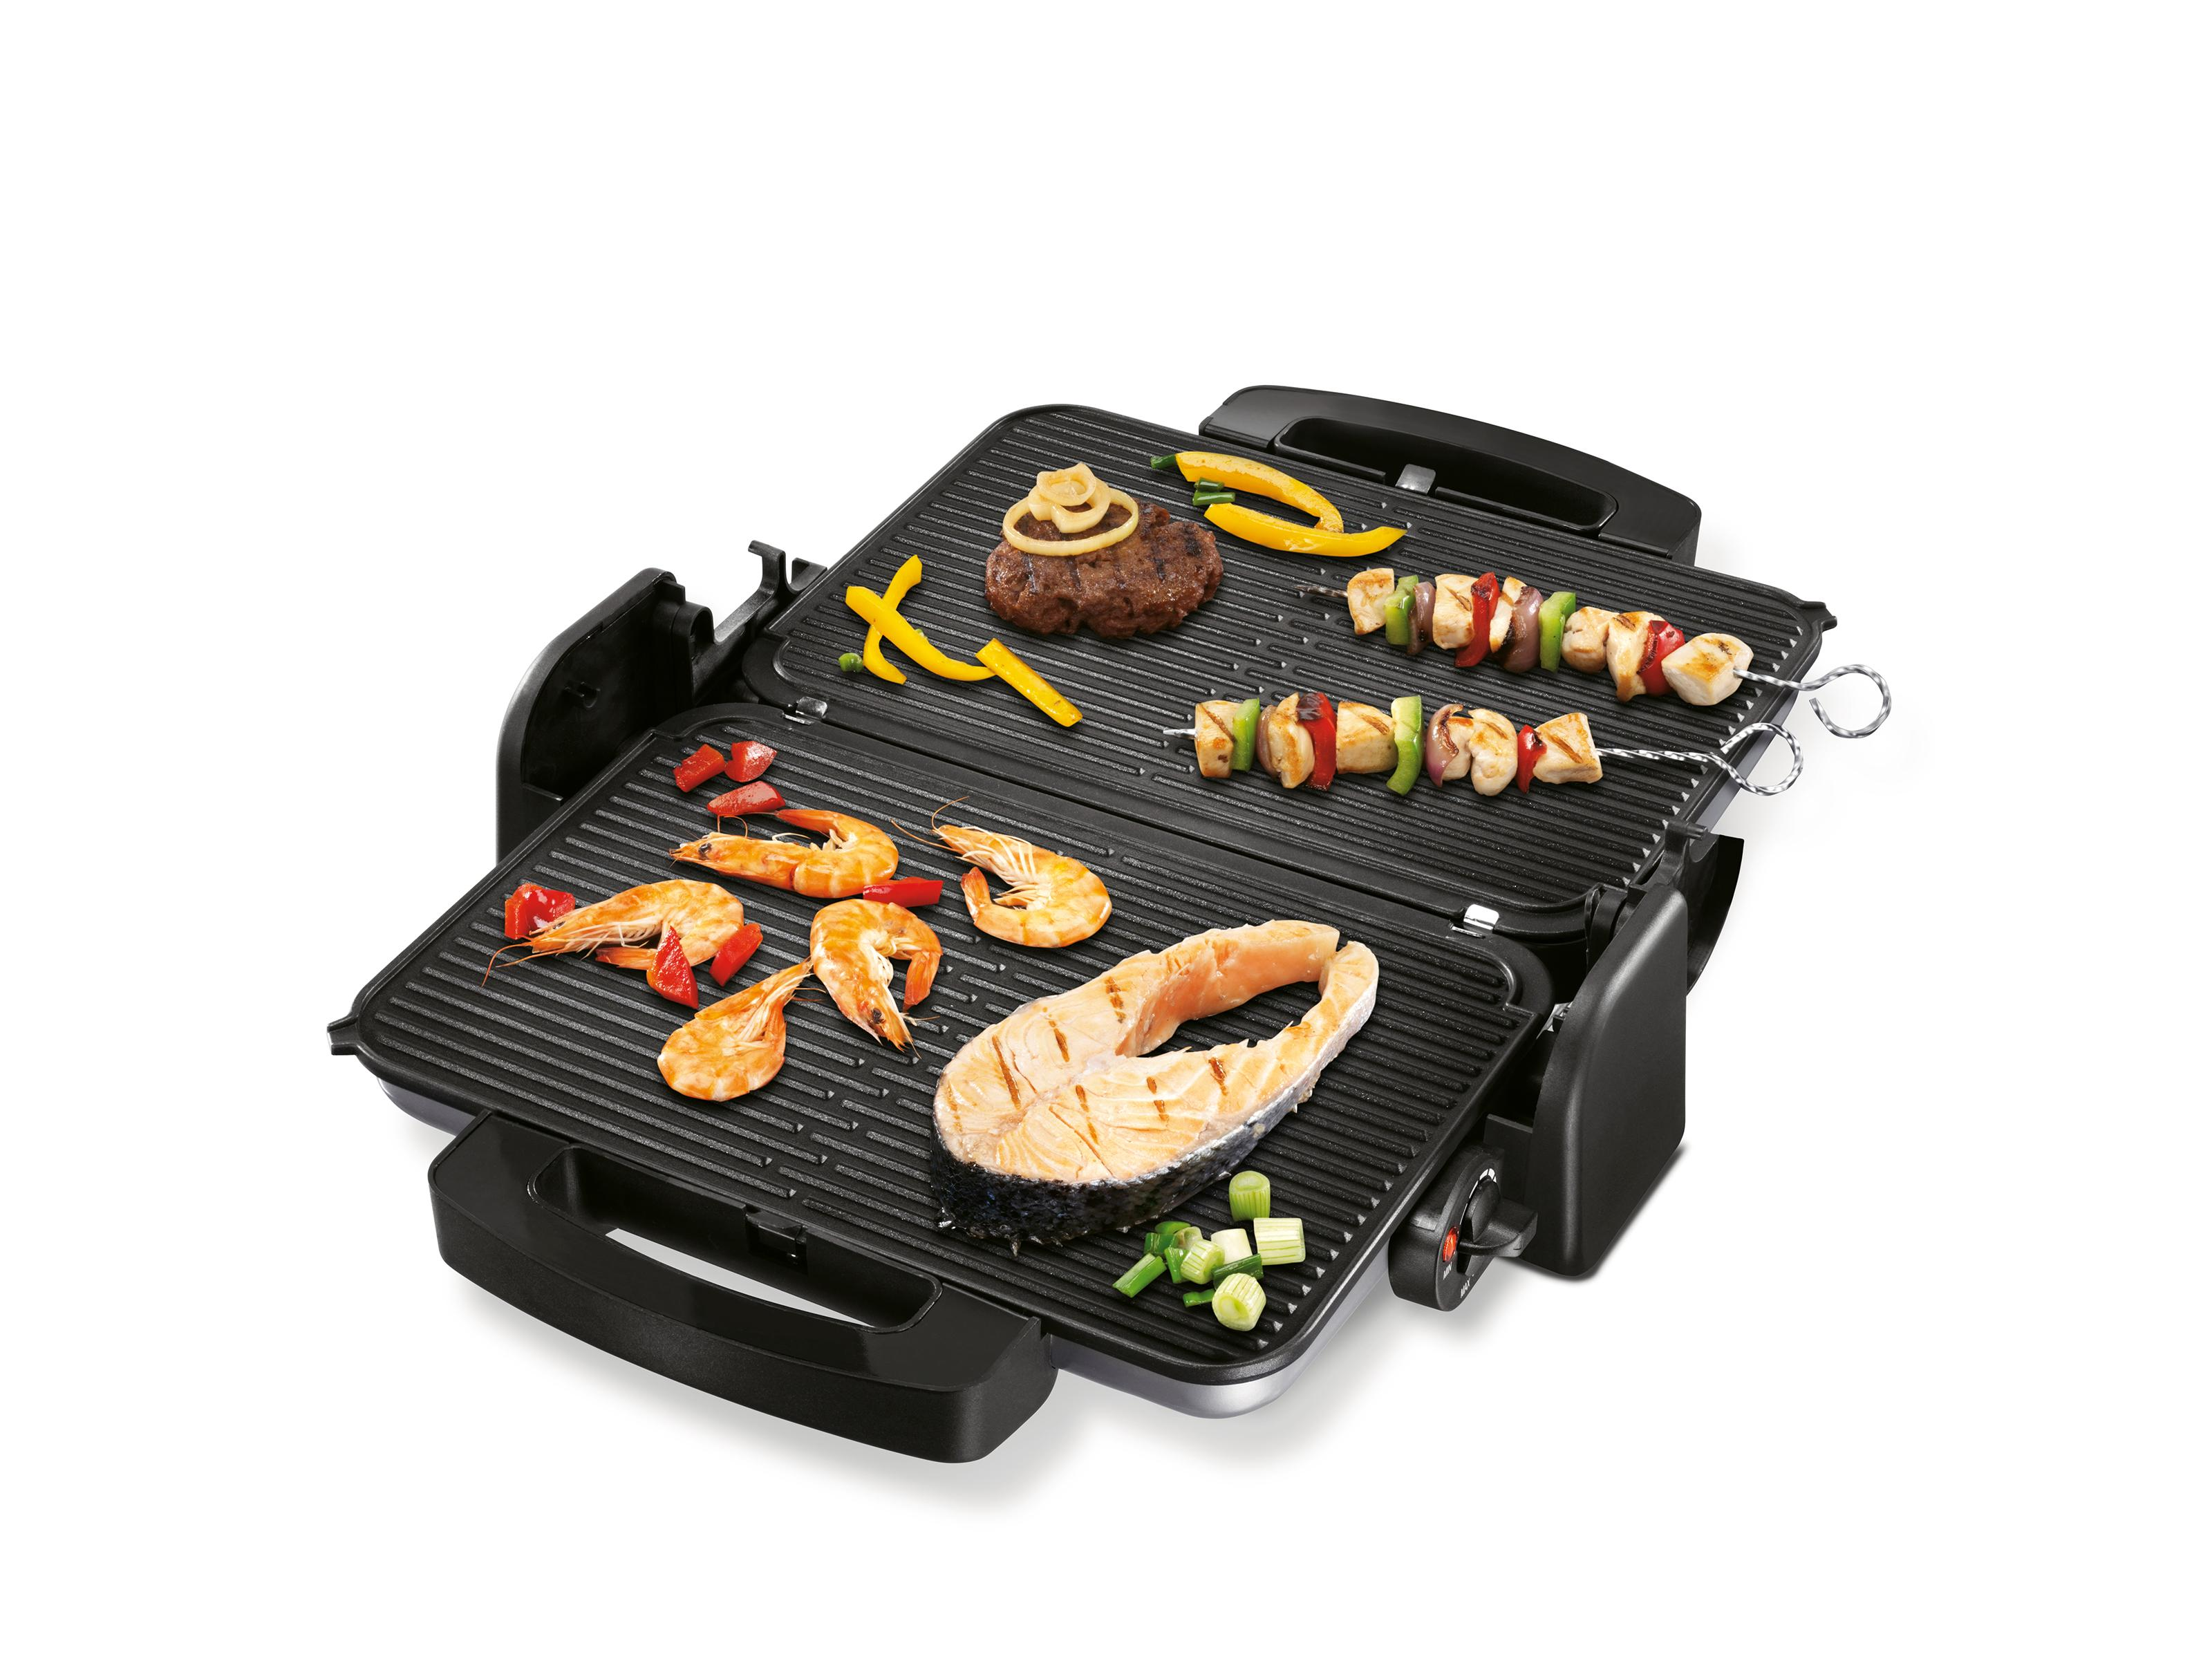 appareil croque gaufre grill tefal astucio appareil 3 en 1 grillsauteuse posot class croque. Black Bedroom Furniture Sets. Home Design Ideas